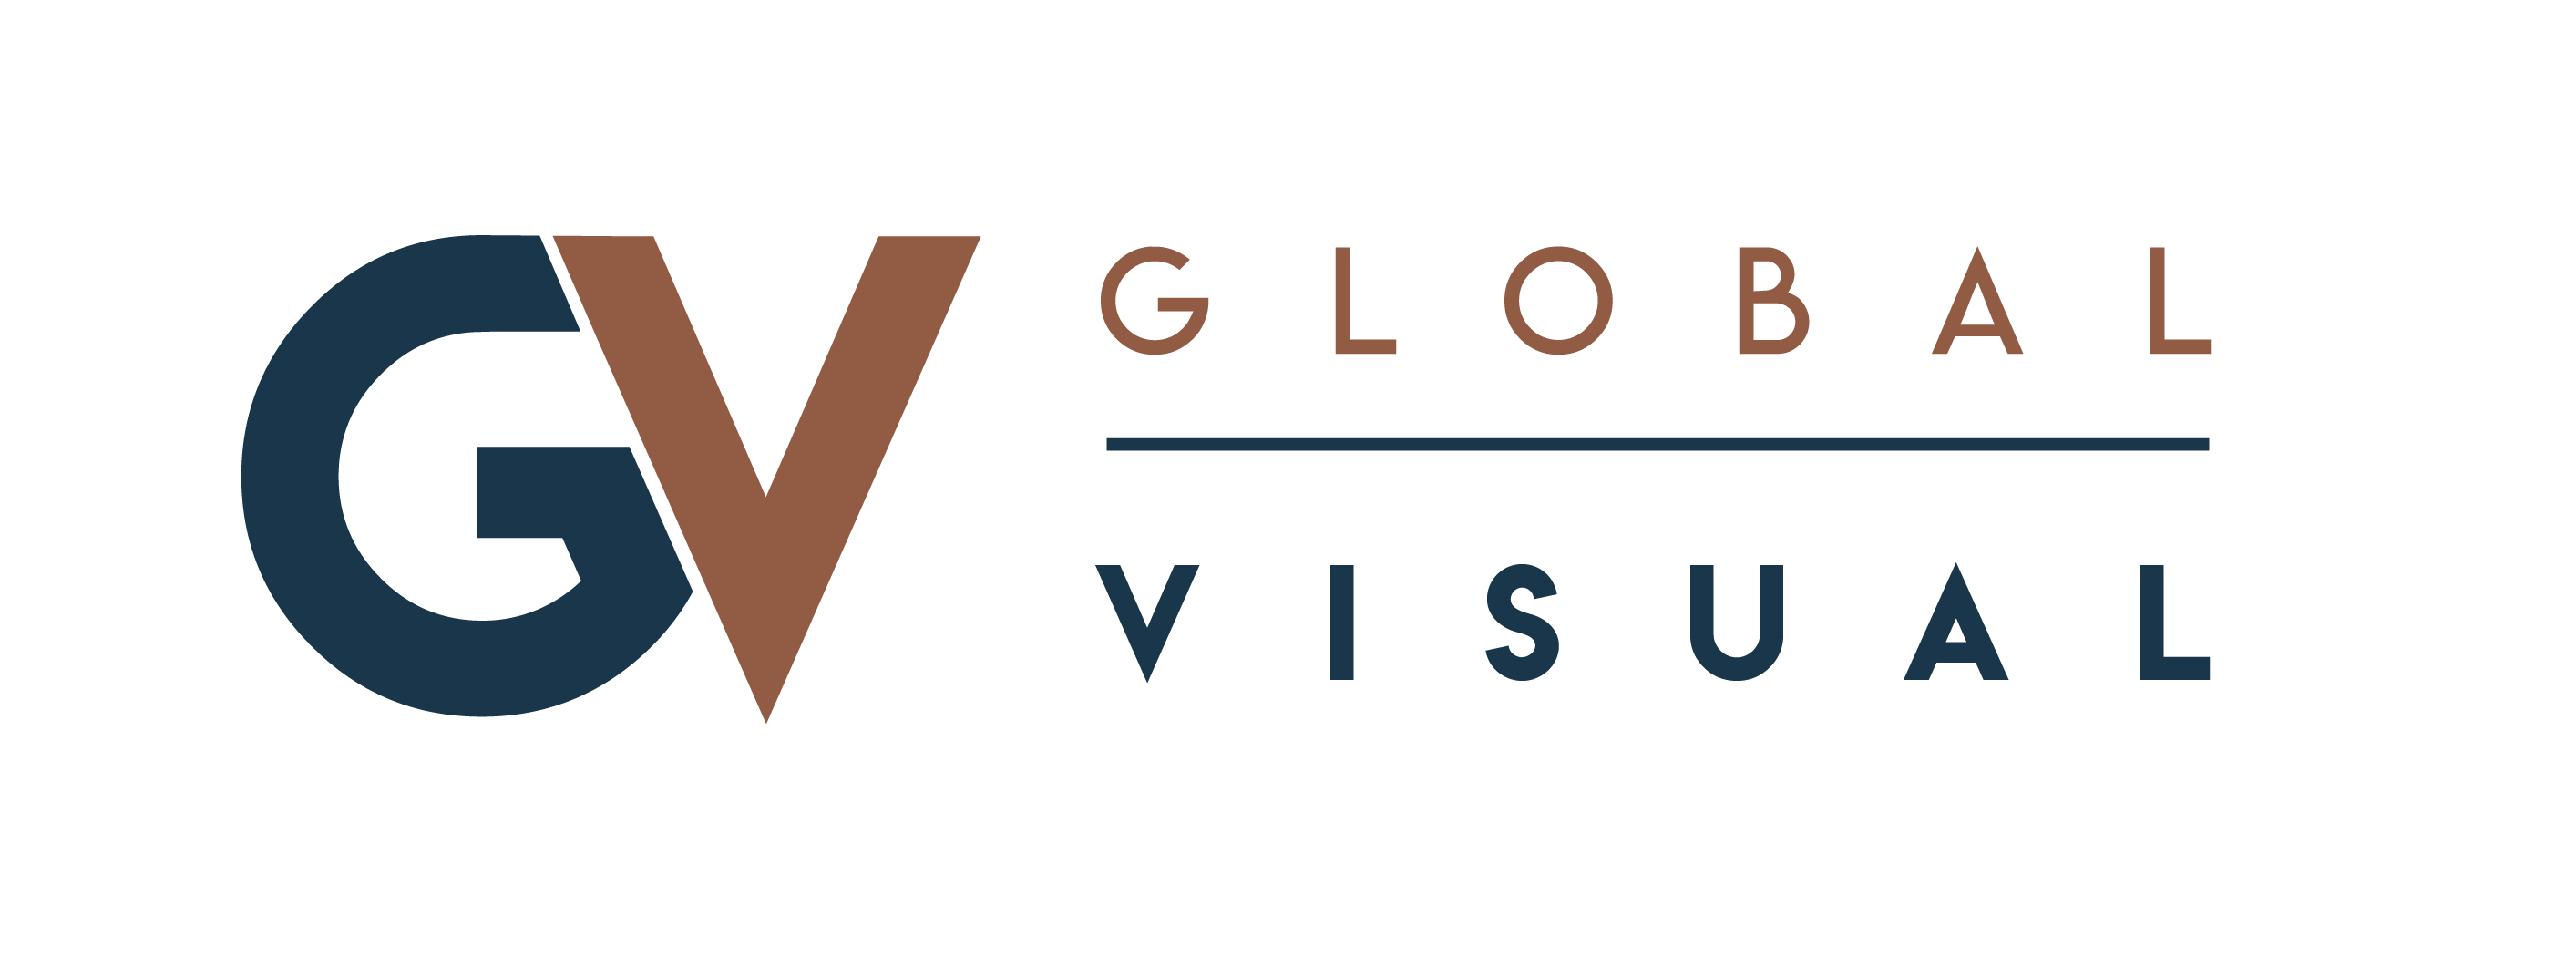 global visual wide logo